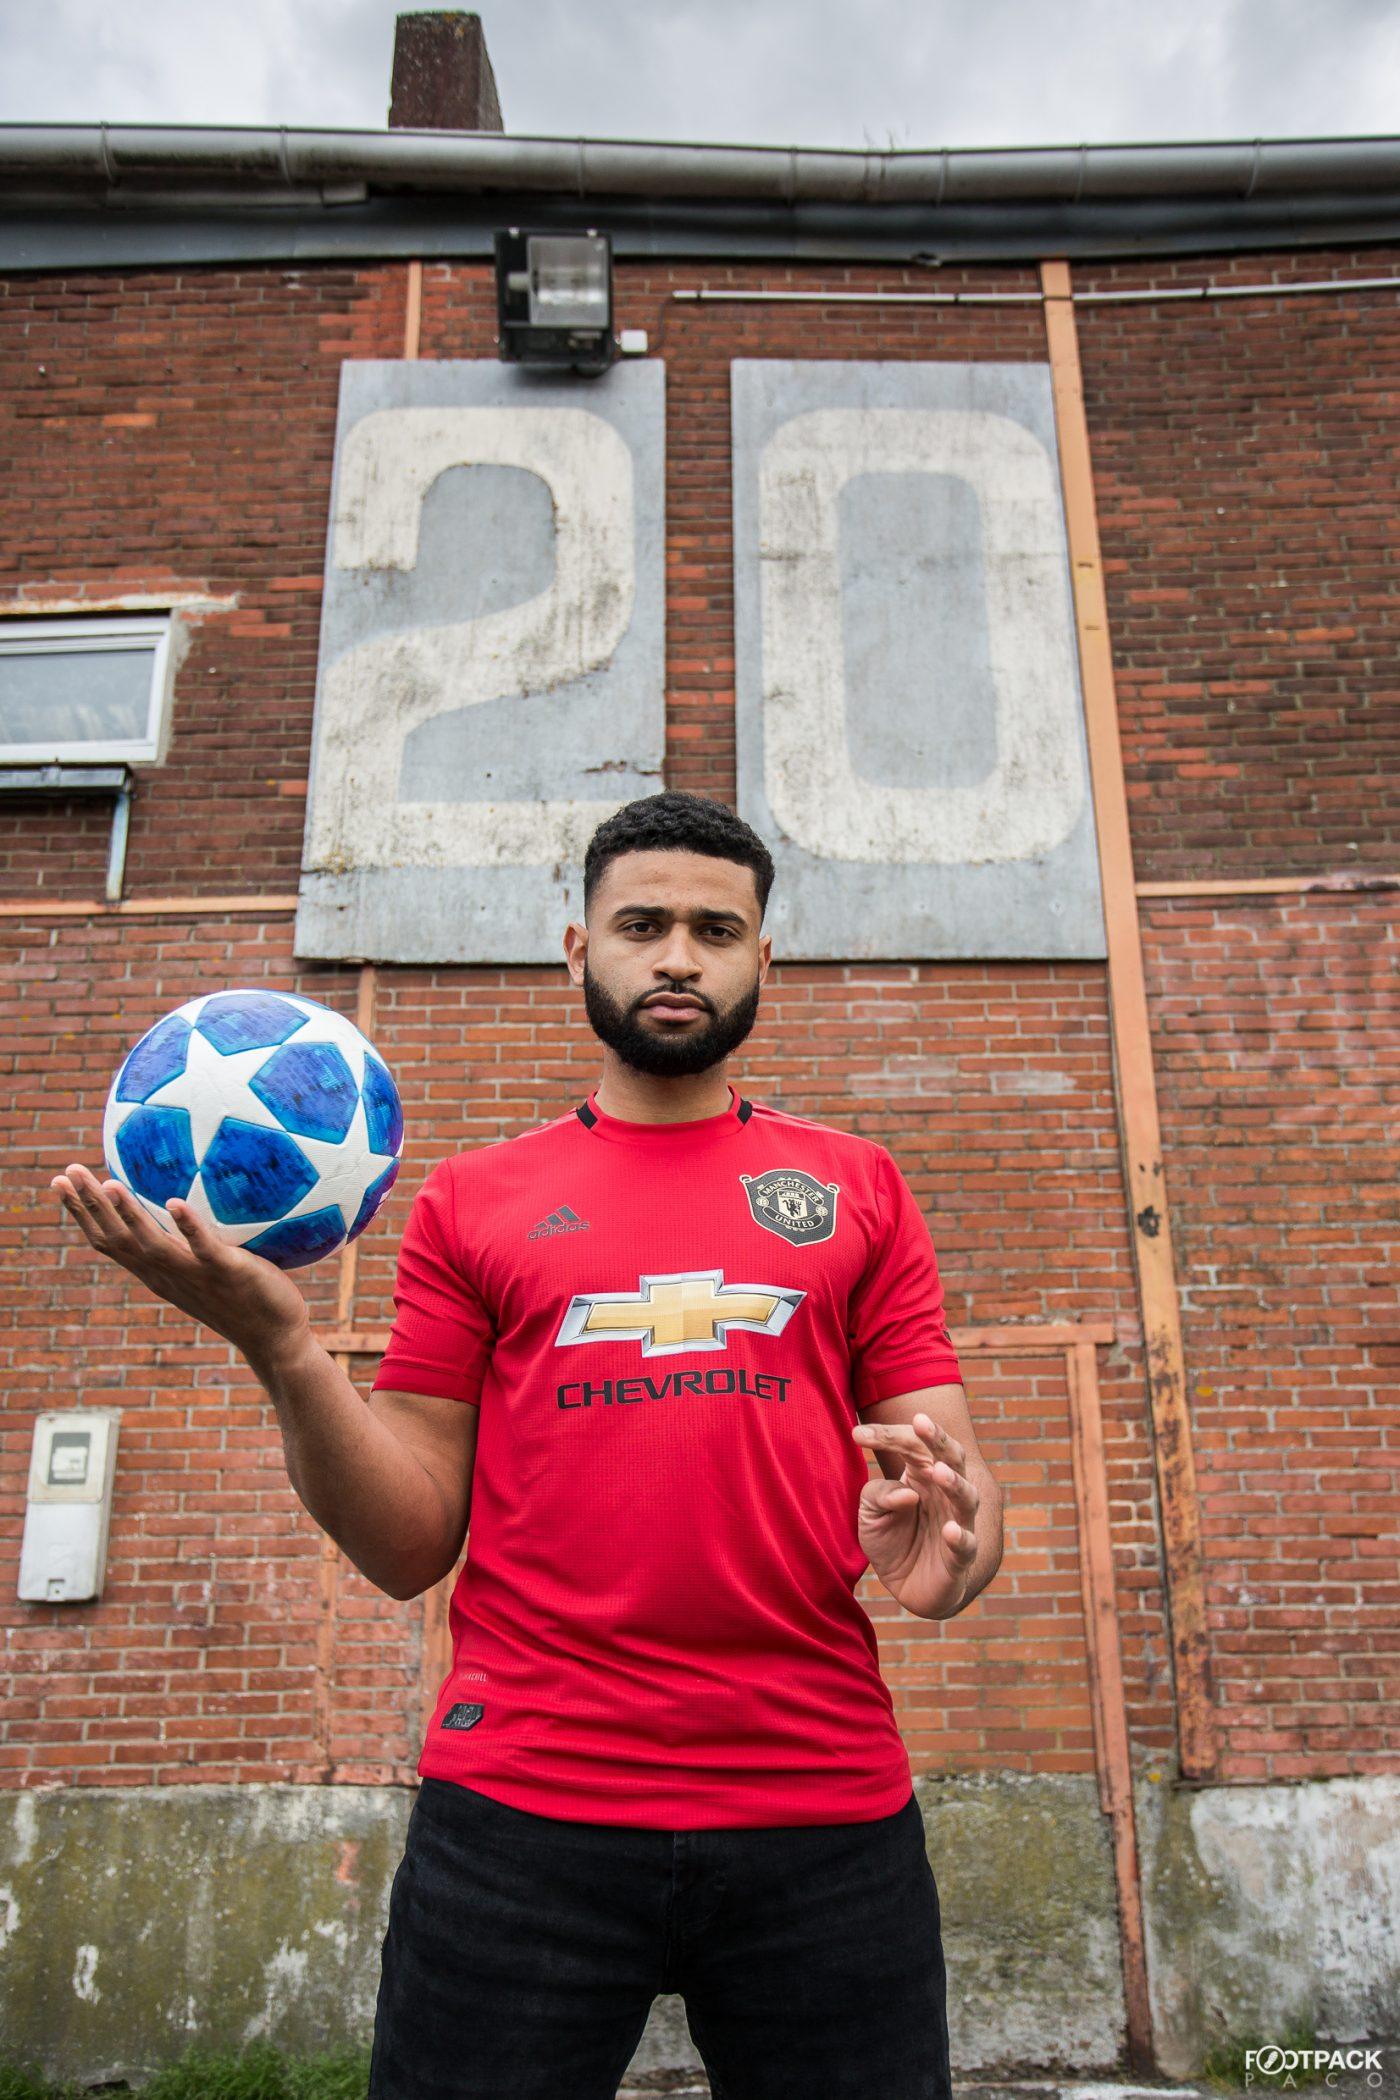 maillot-domicile-manchester-united-2019-2020-adidas-footpack-9